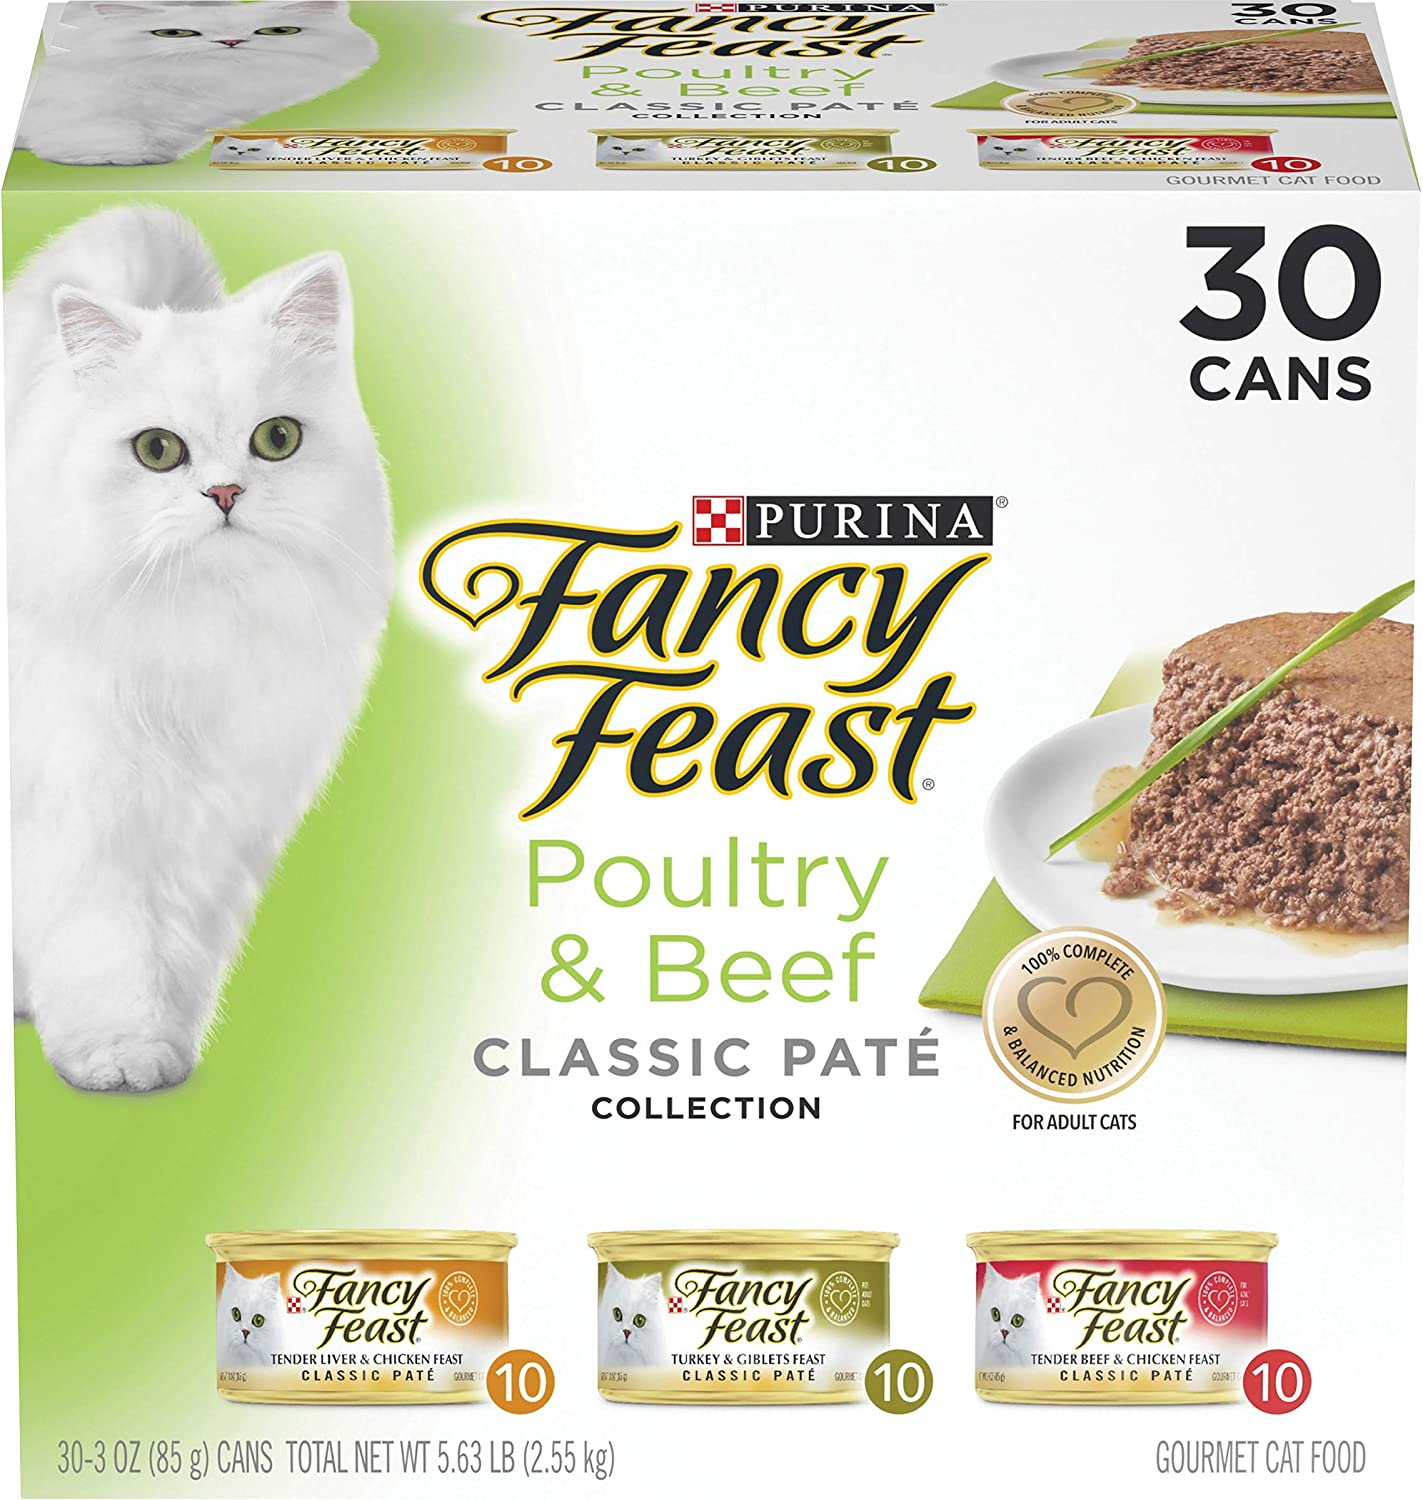 Purina Fancy Feast Grain Free Pate Wet Cat Food Variety Pack, Poultry & Beef Collection - (30) 3 oz. Cans